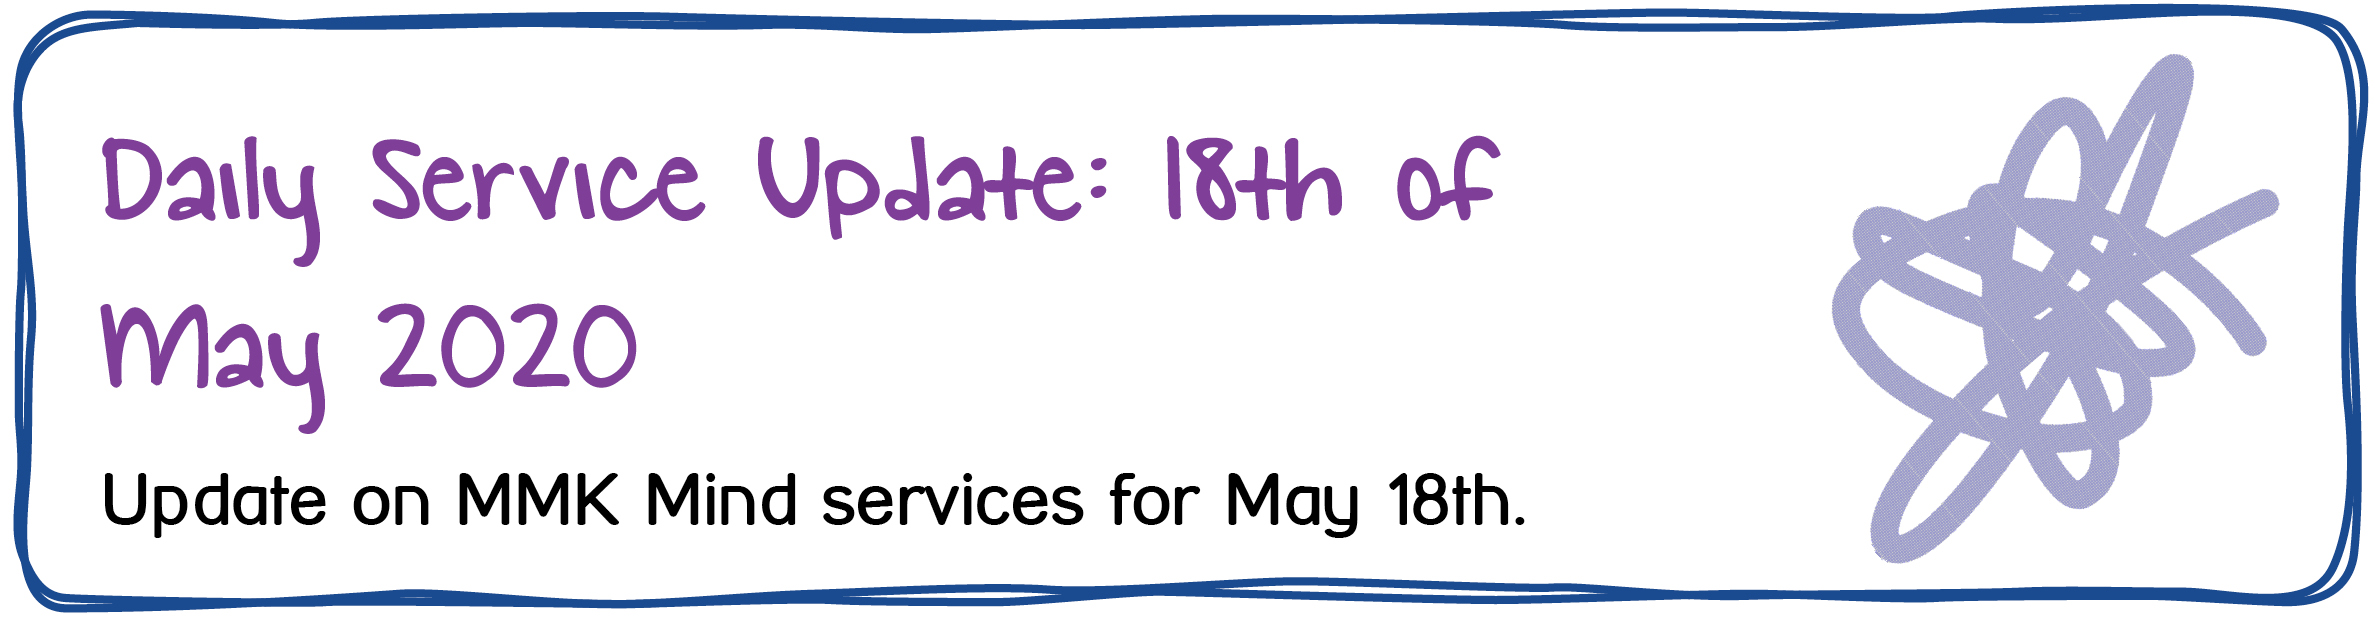 Daily Service Update: 18th of May 2020. Update on MMK Mind services for May 18th.